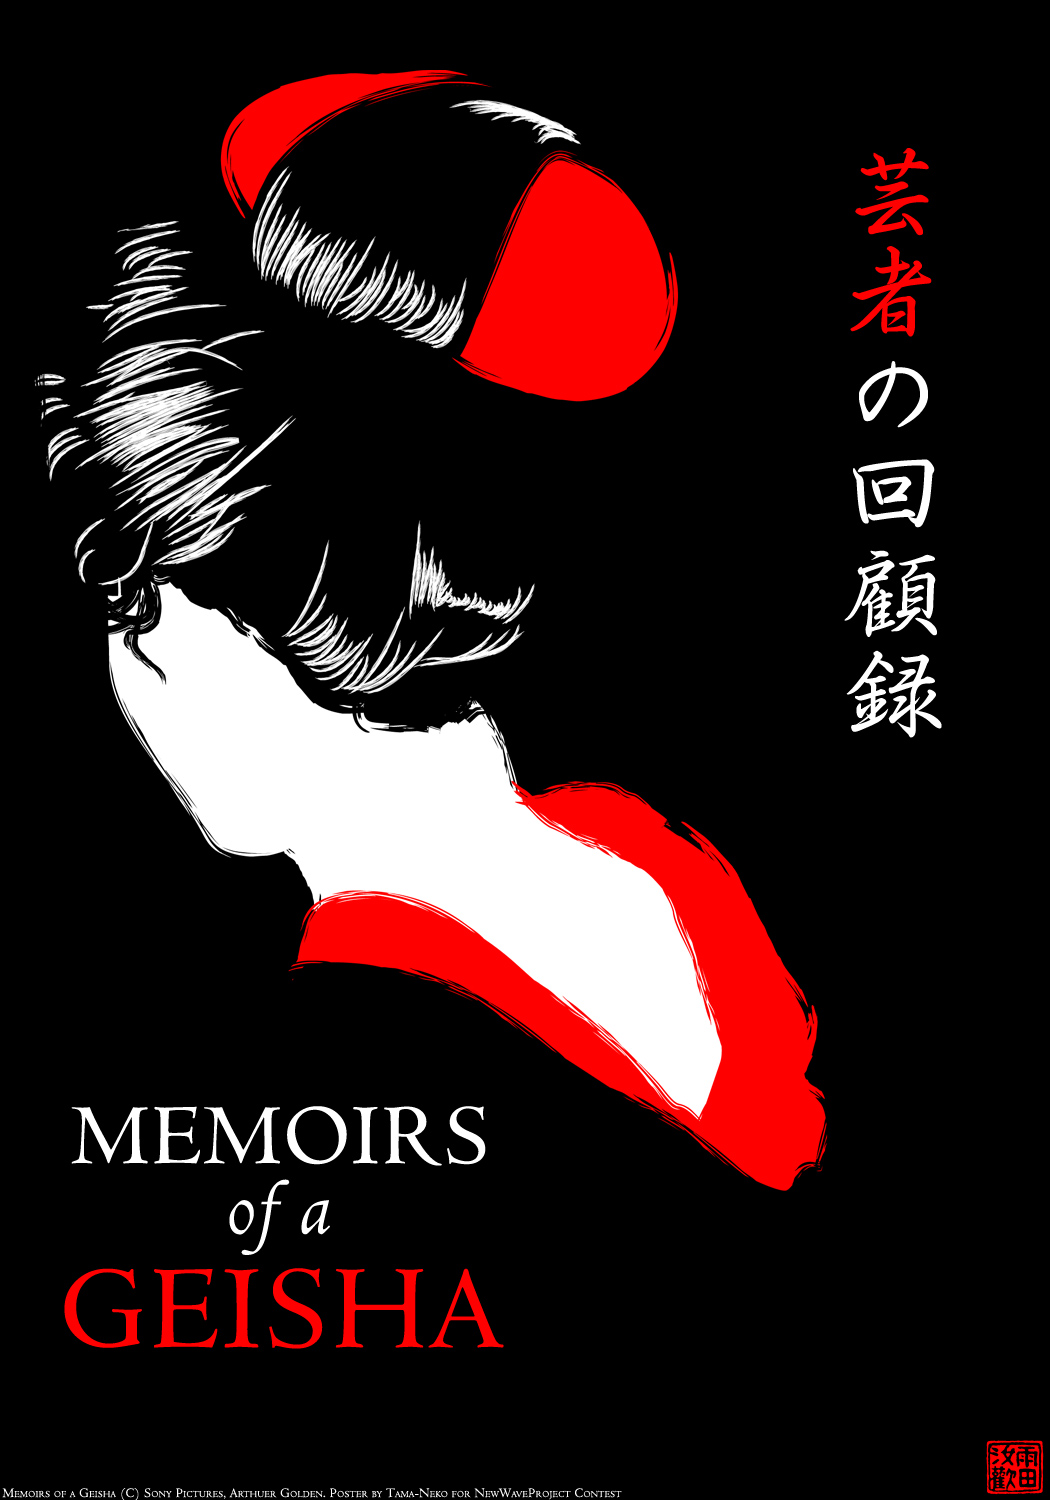 memoirs of a geisha theme essay Memoirs of a geisha questions and answers - discover the enotescom community of teachers, mentors and students just like you that can answer any question you might have on memoirs of a geisha.